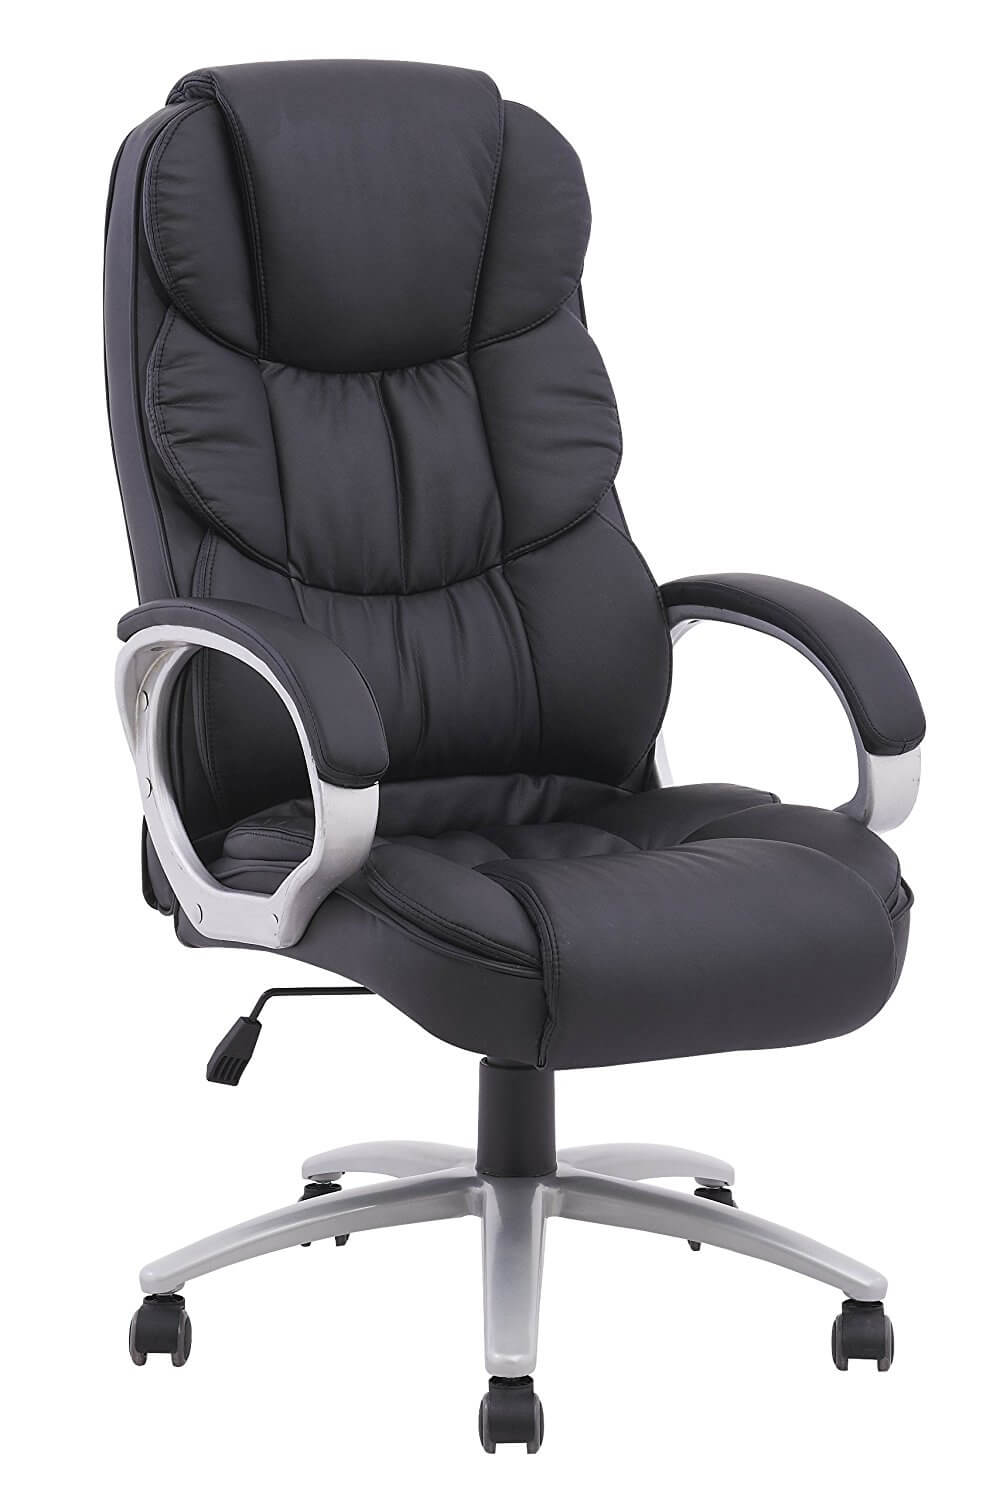 Excellent Best Office Chair Under 100 Dollars Affordable Office Short Links Chair Design For Home Short Linksinfo